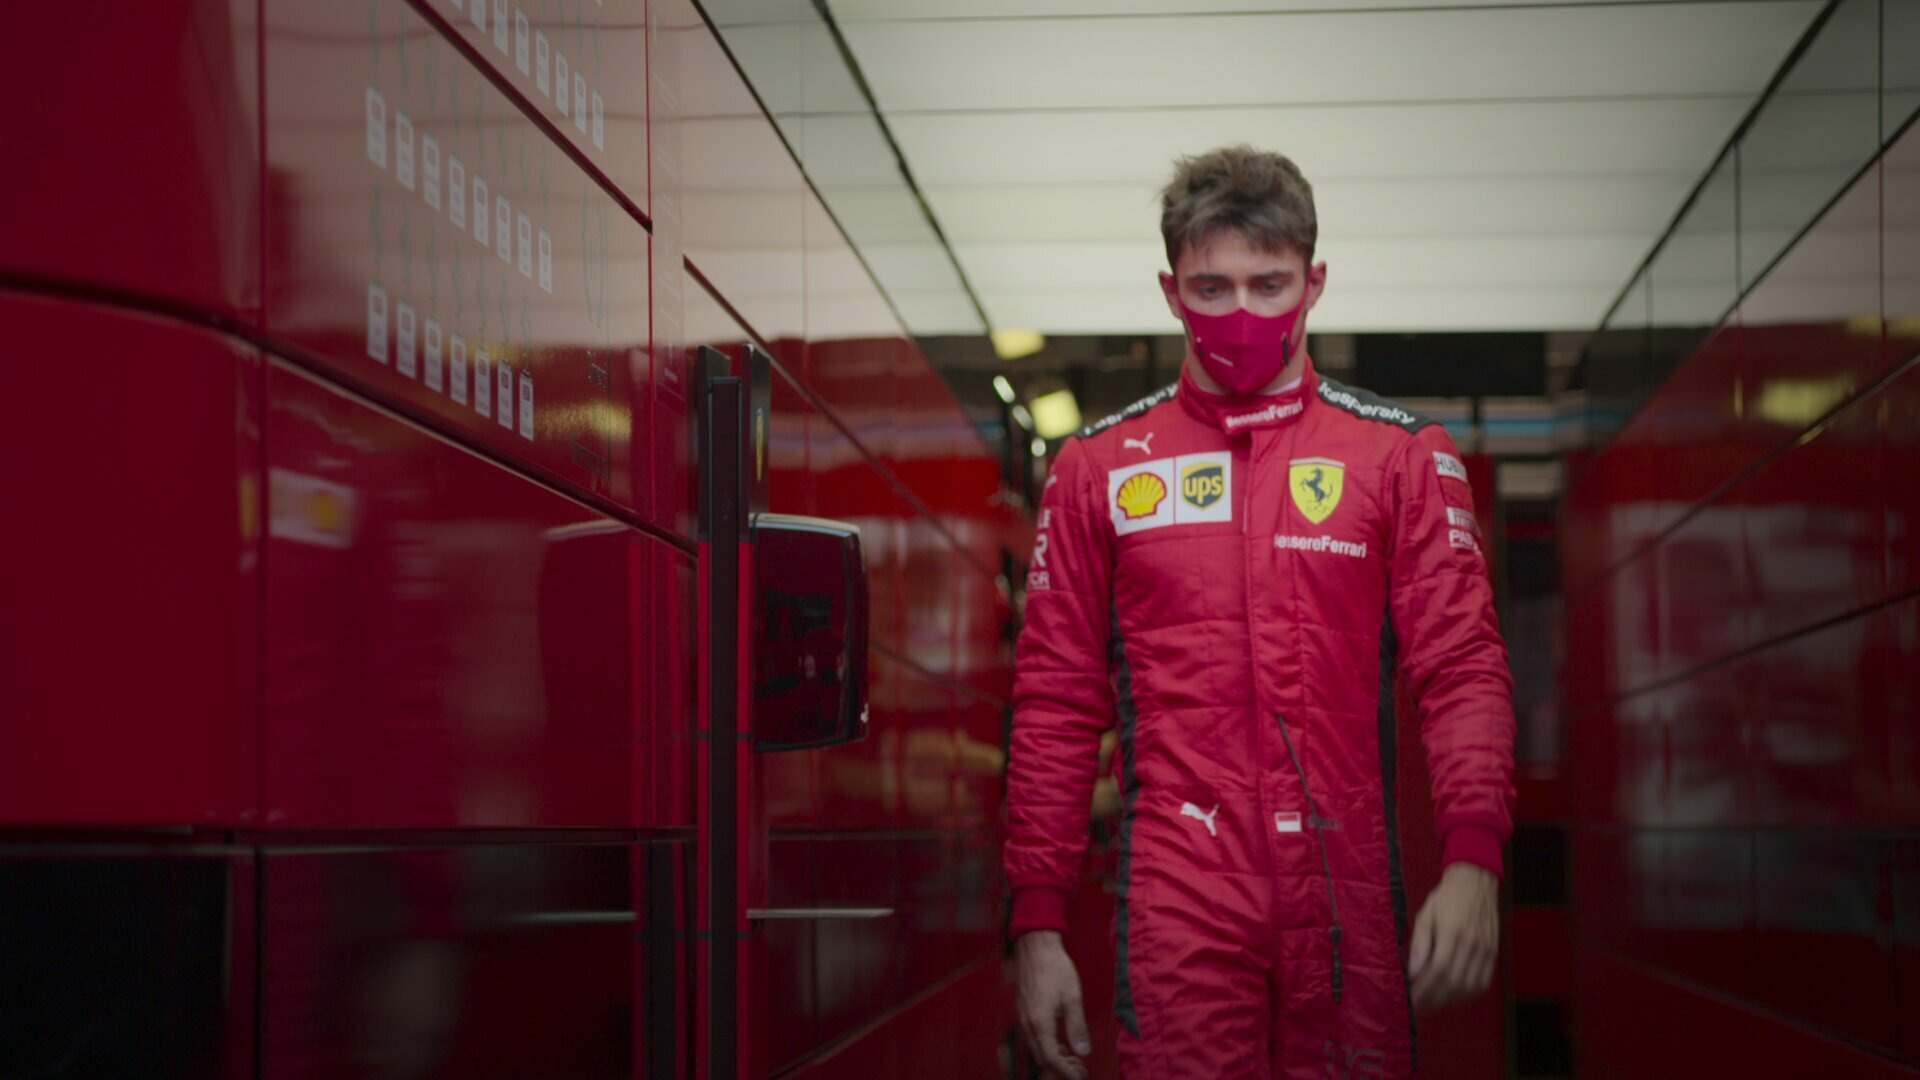 Formula 1: Drive to Survive — s03e04 — We Need to Talk About Ferrari